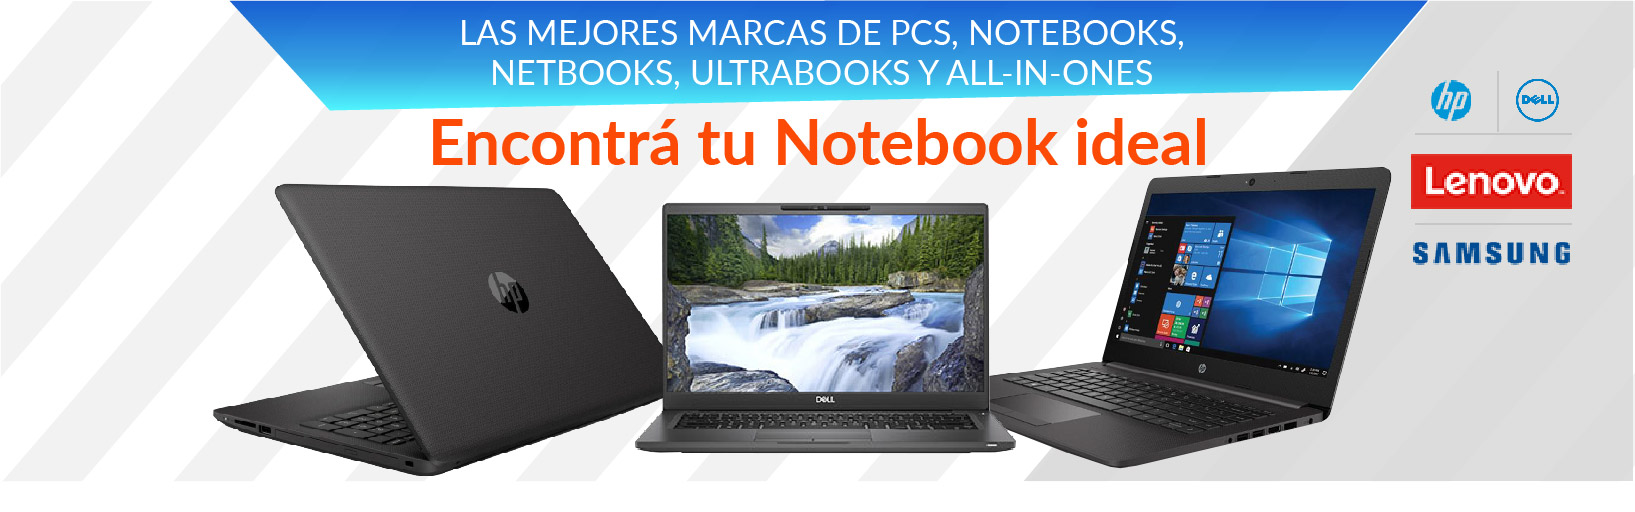 banner-notebooks2.jpg